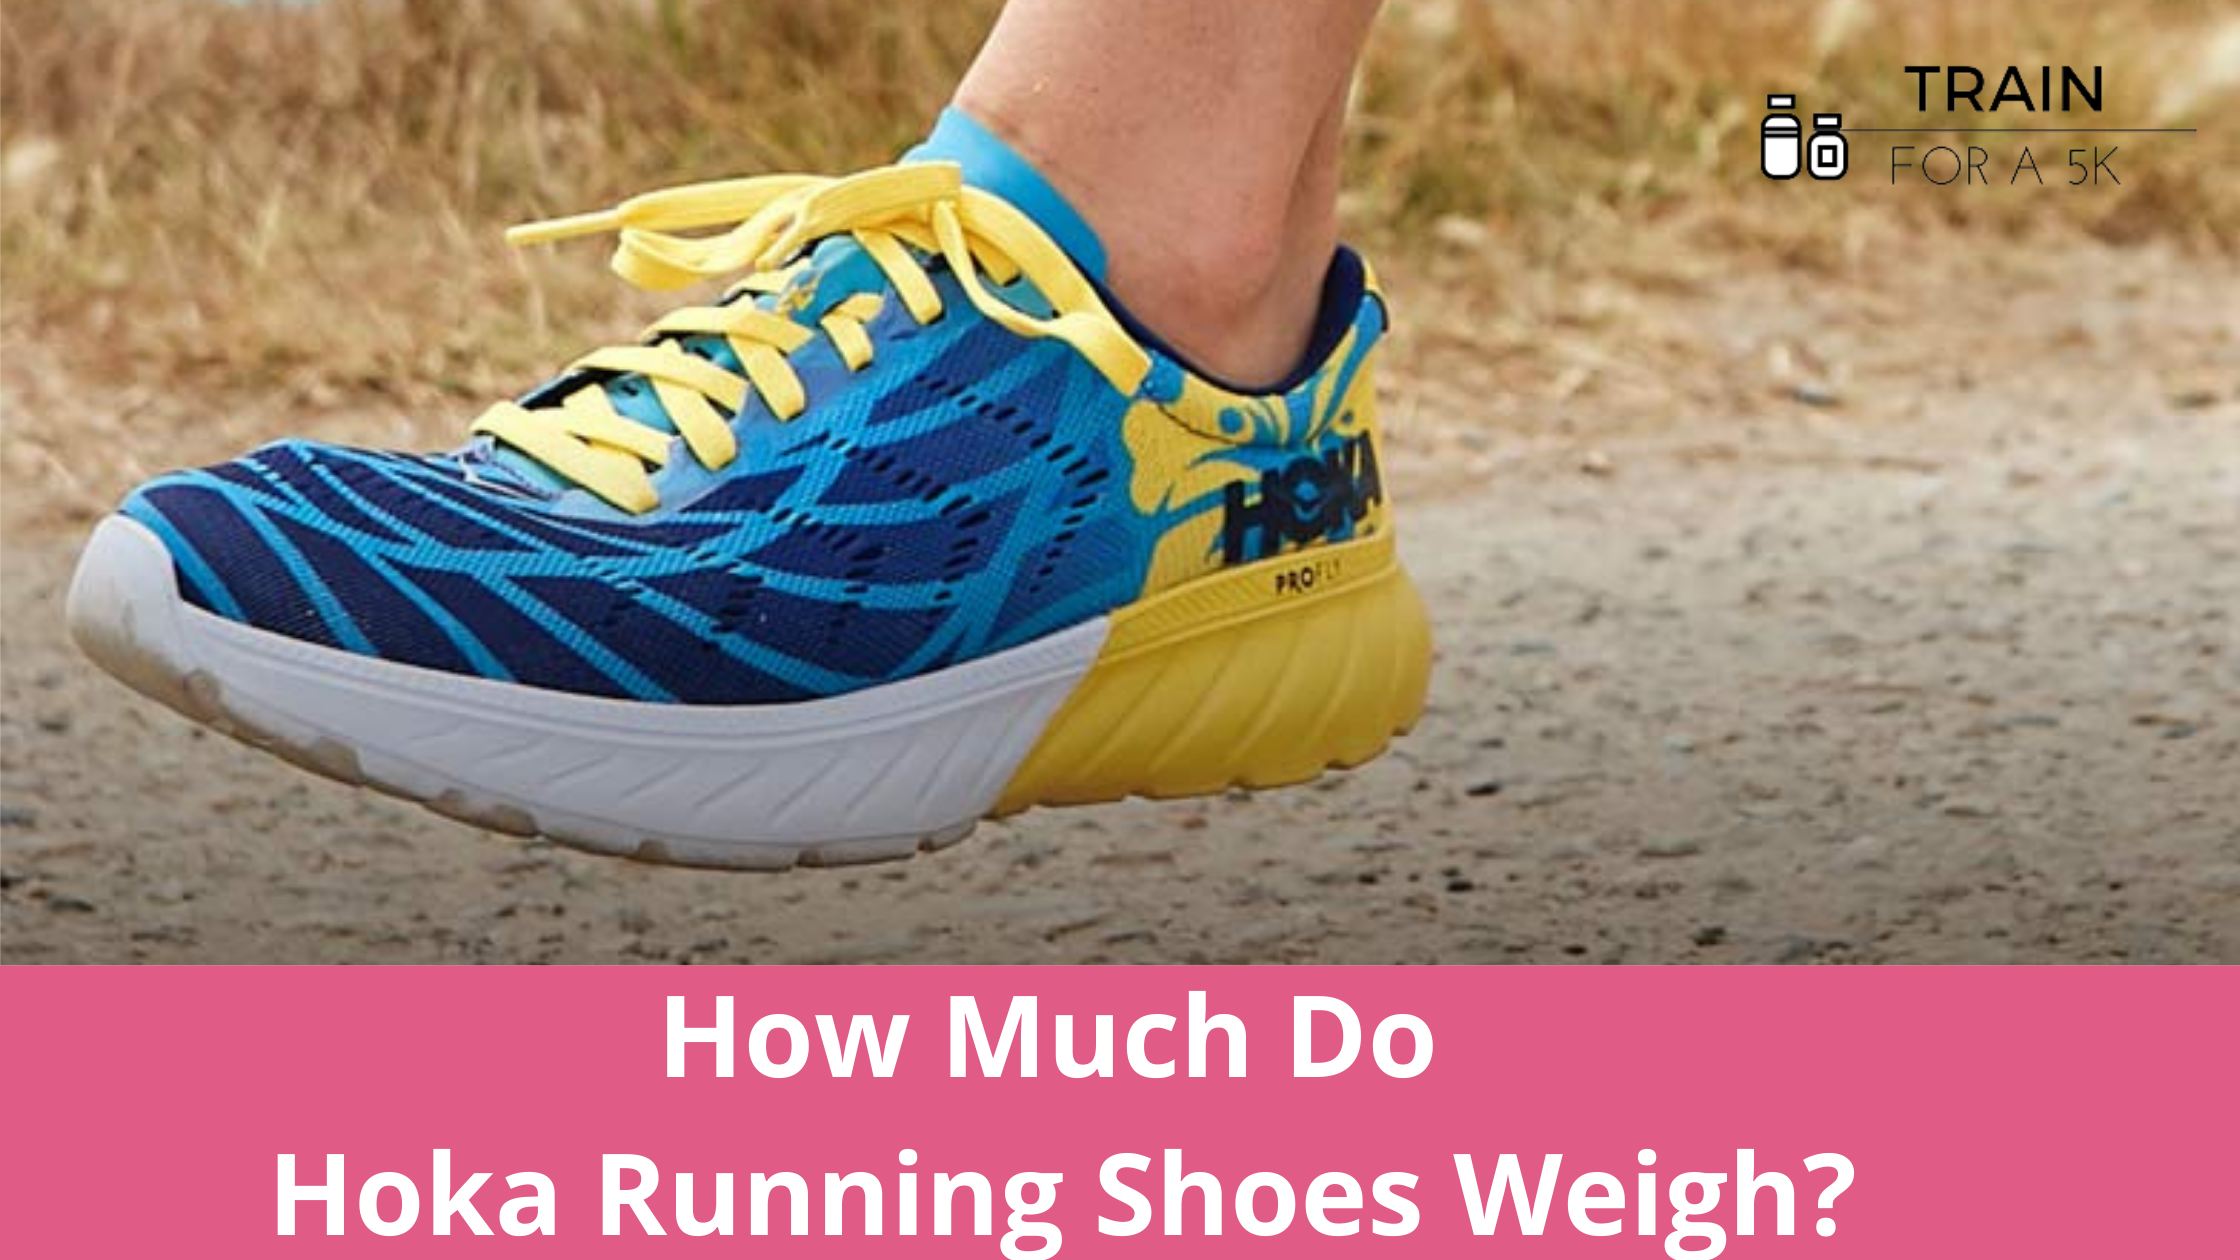 The average weight of a Hoka running shoe is 8.97 ounces in men's and 8.14 ounces in women's. The heaviest Hoka running shoe is the Bondi and the lightest is the Rocket X.